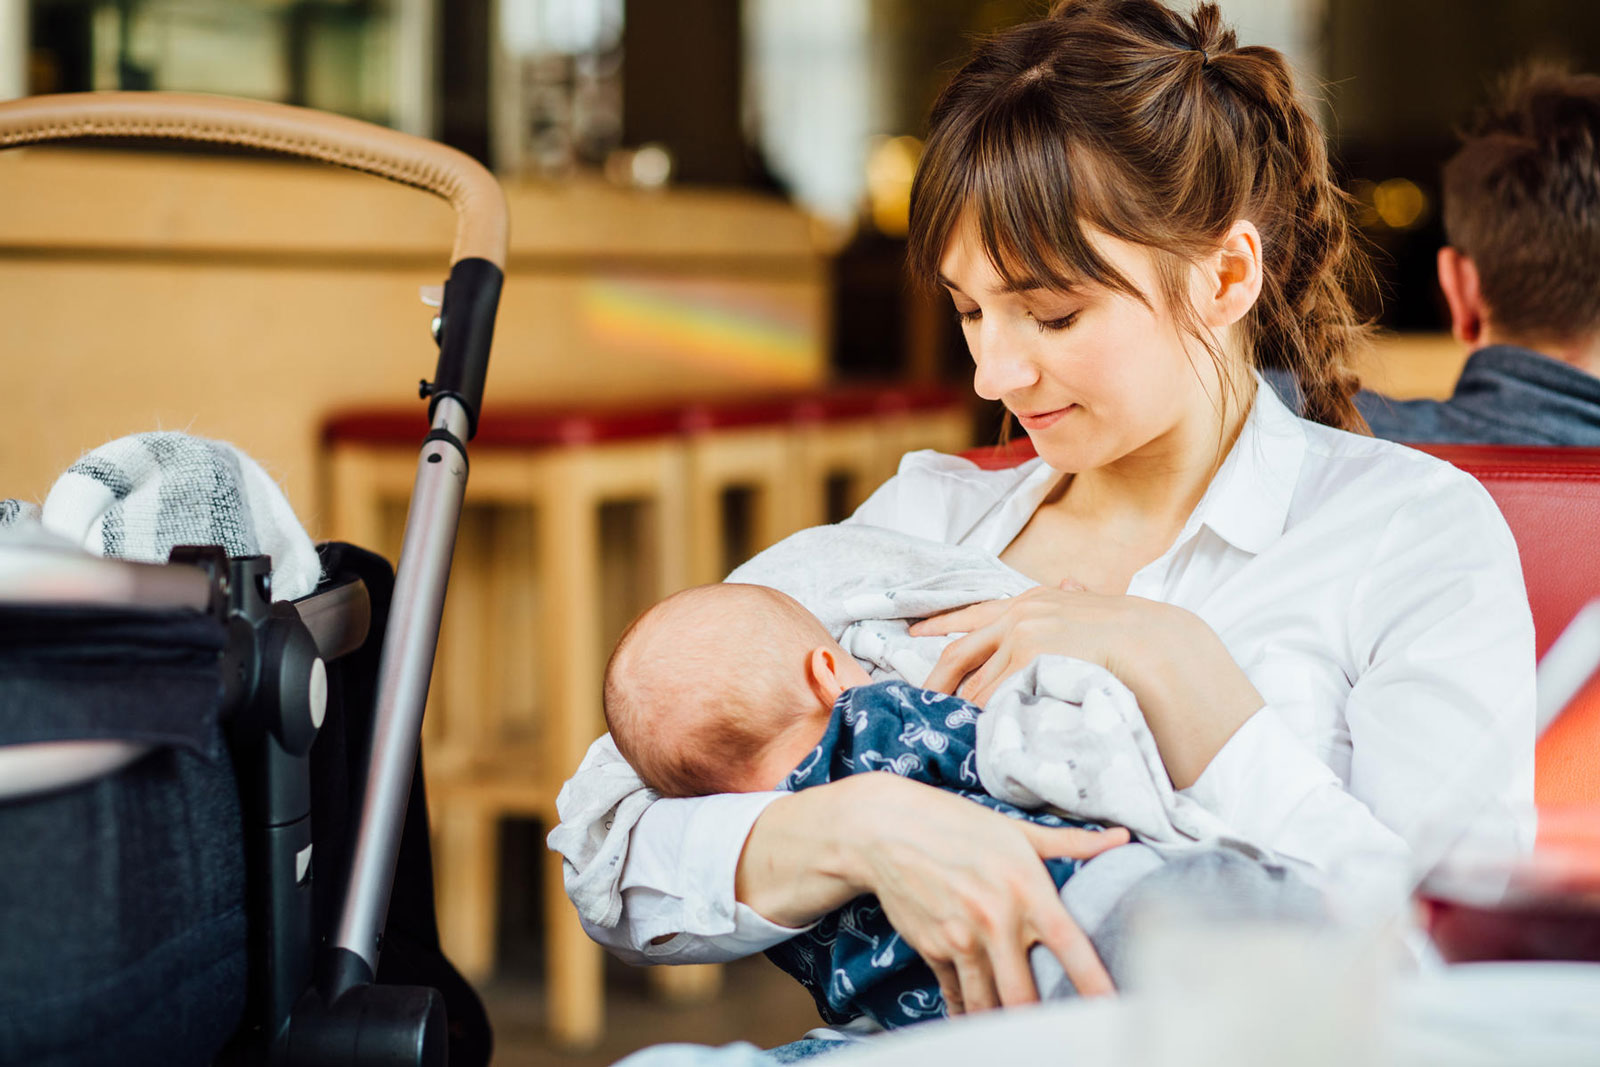 Mother Breastfeeding Her Baby   #MomLife: 25 Things Only New Moms Can Fully Understand